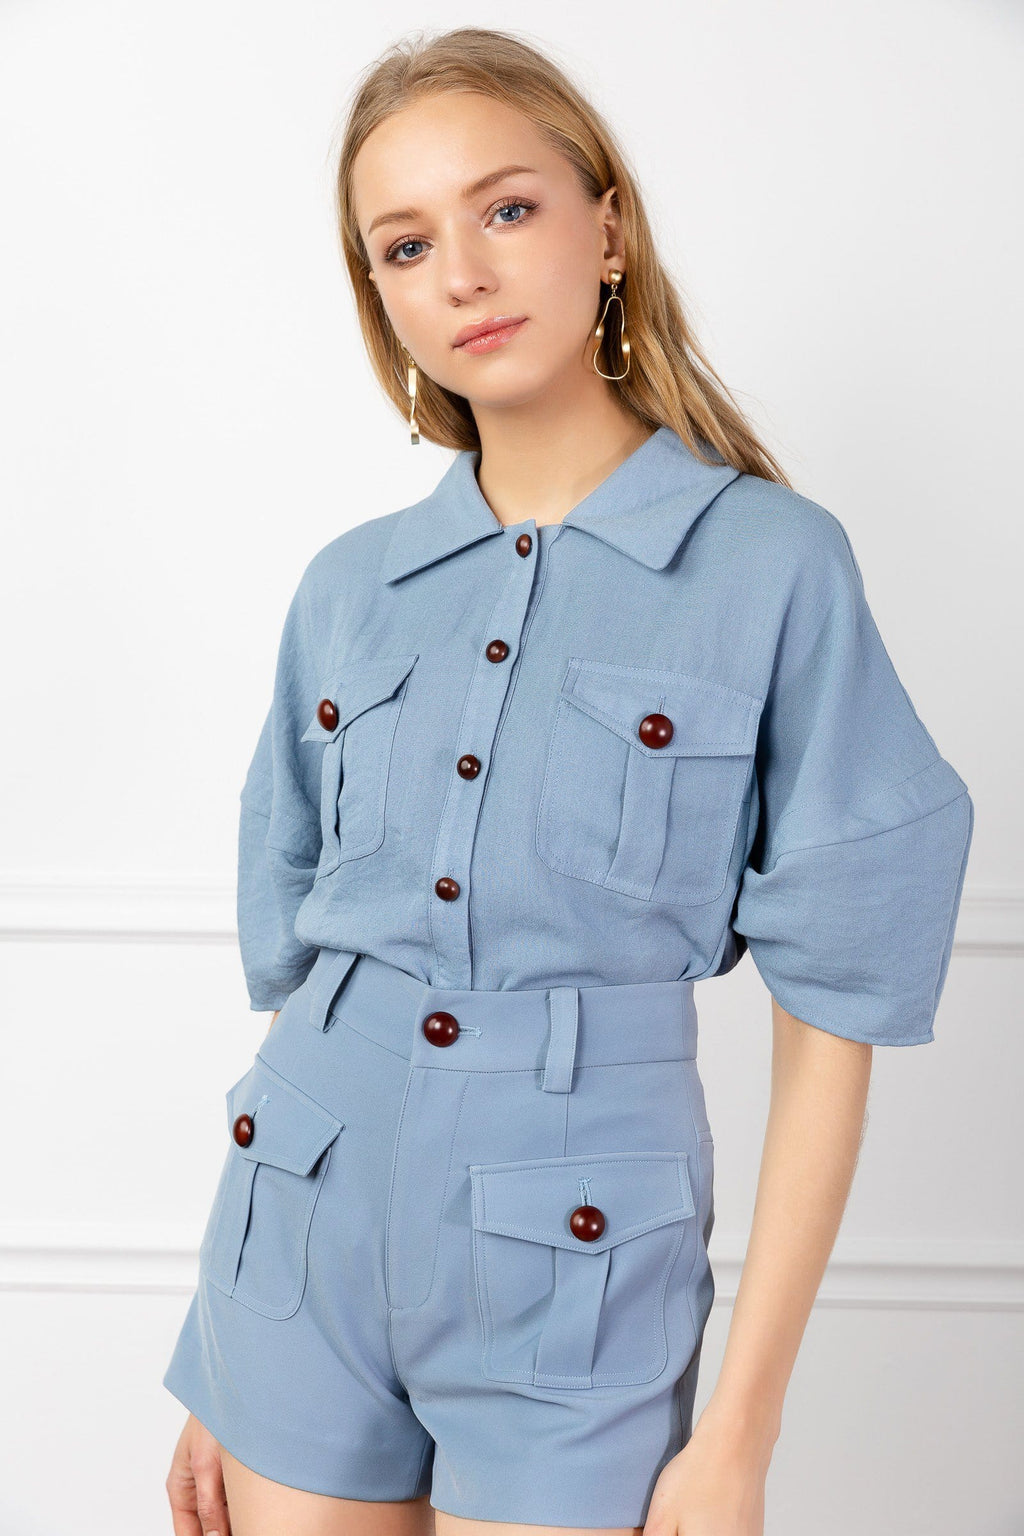 Blue Button Up Shirt and Shorts set by J.ING Women's Clothing